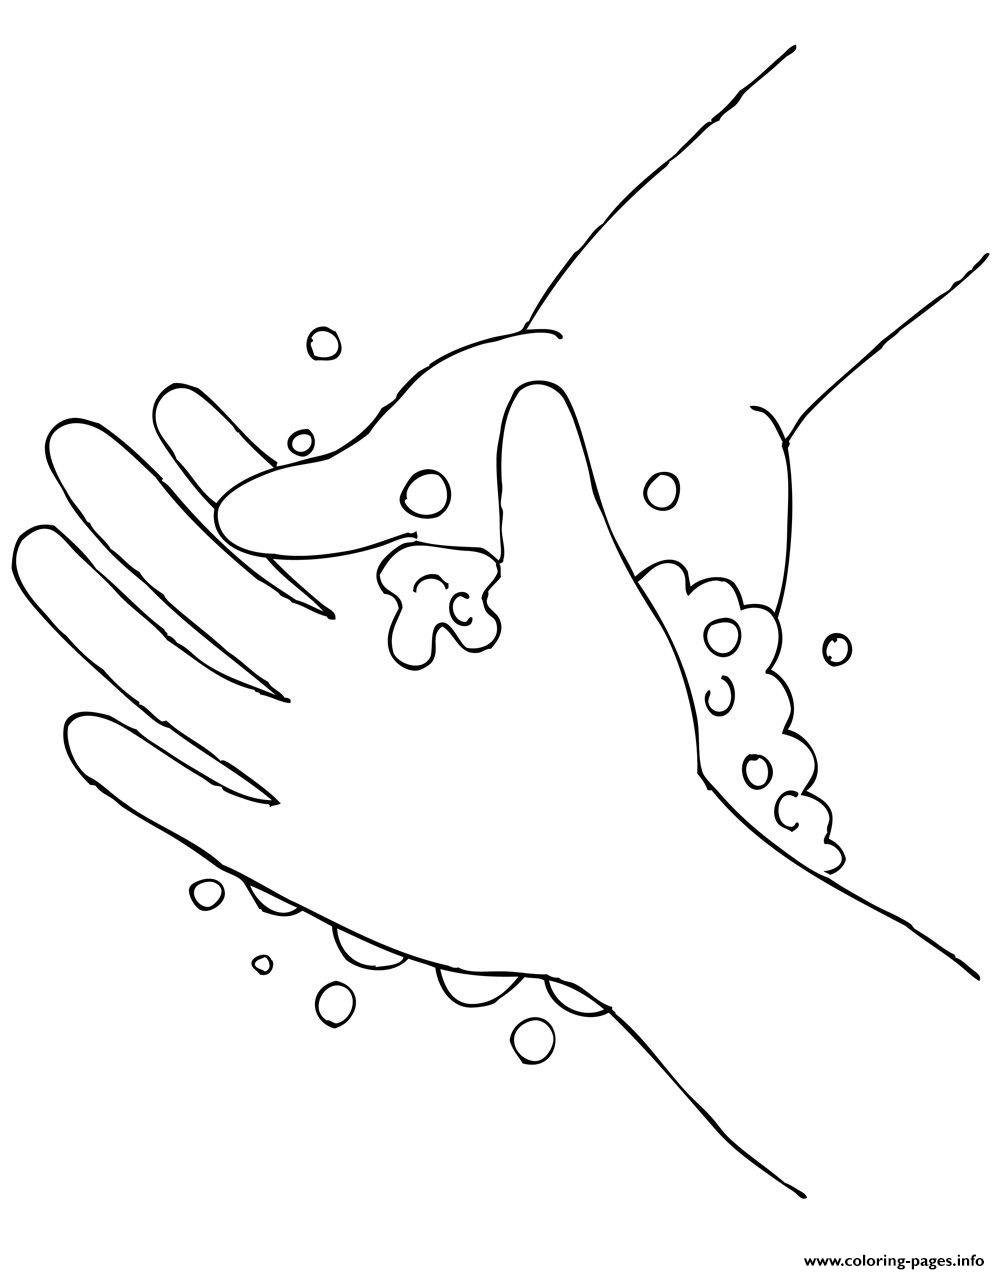 Germs and Microbes Coloring Book: 9780486780184 - Christianbook.com | 1274x1000